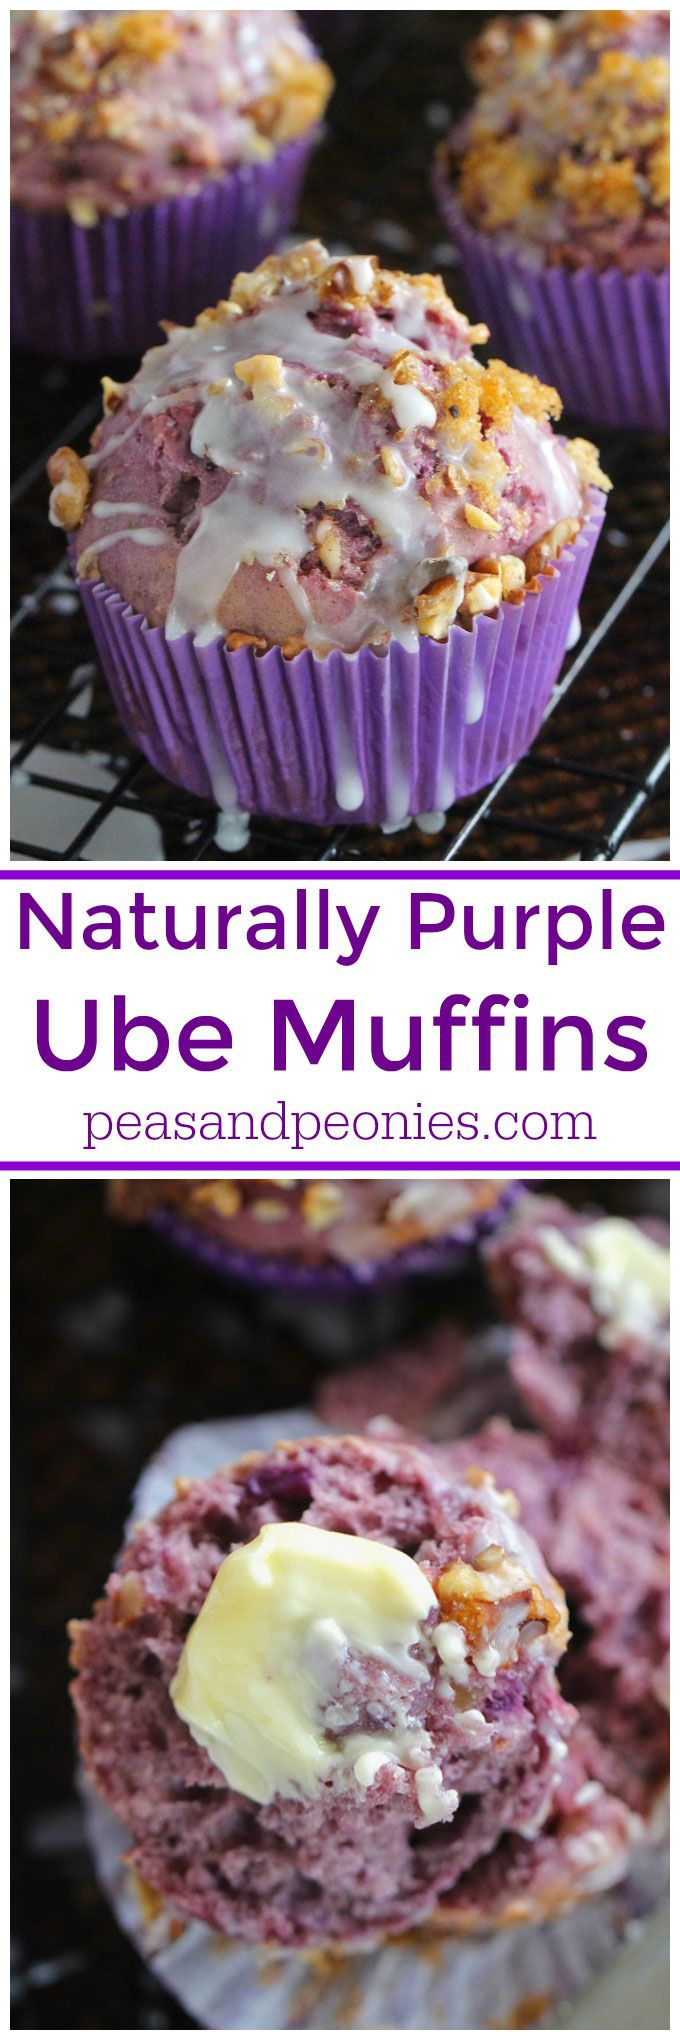 Ube muffins or Purple Yam muffins, are insanely delicious and naturally purple. Topped with toasted walnuts and brown sugar these are fun to make and fun to eat.